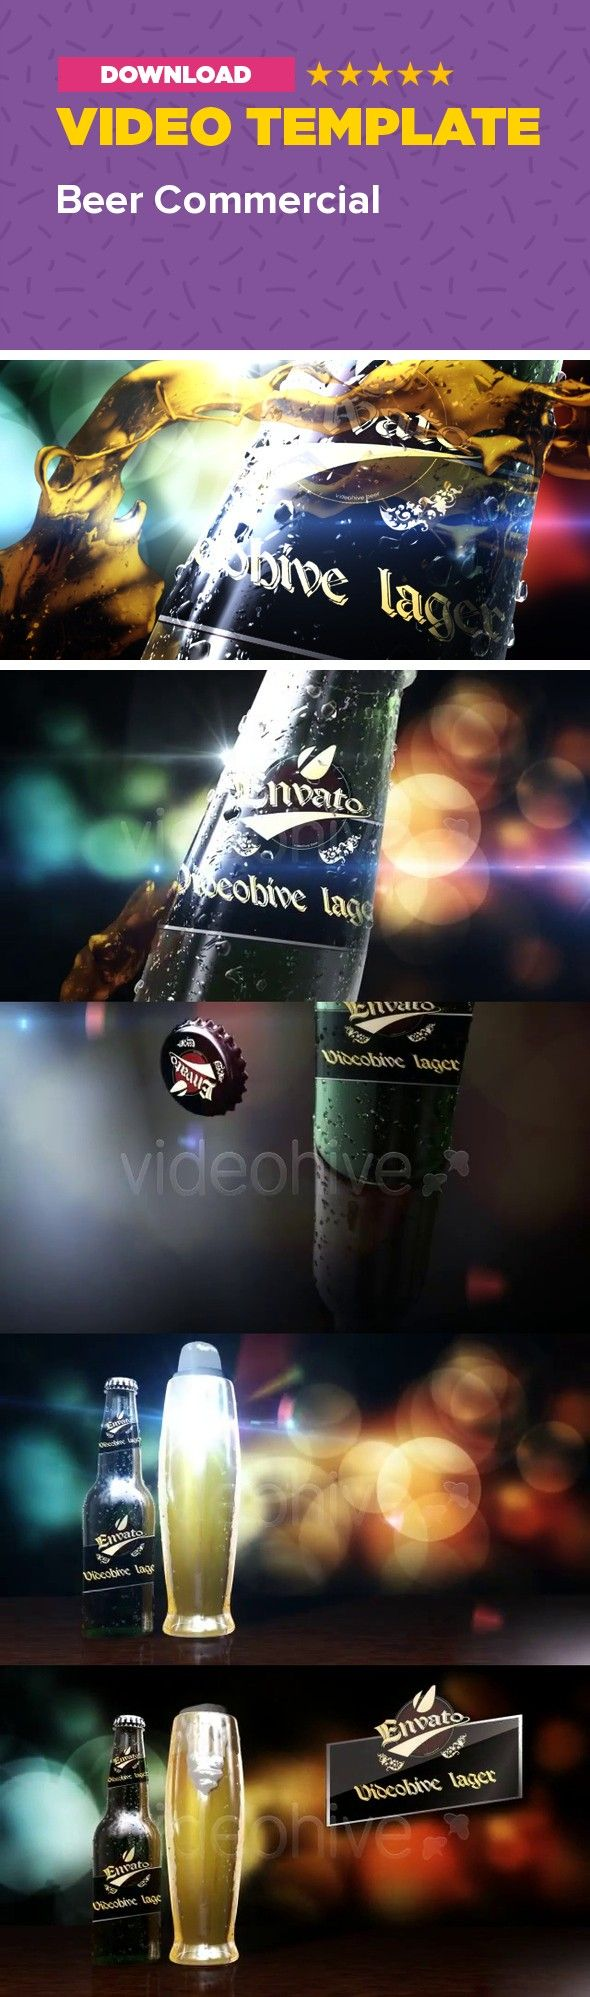 alcohol, bar, beer, Beer Commercial after effects, beer logo, Beer opener, bottle, cold, Drink Commercial, intro, liquid, logo reveal, pub, soda, tv After Effects BEER COMMERCIAL template   	  HD VERSION: http://www.youtube.com/watch?v=aPu9kM-D1TM Beer Commercial project, gives you the chance to build yours beer commercial.  Change the background, change the beerlable and your beer commercial ready!!!   	FULL HD 1920X1080   	No plug-in is required but i have also added the file which uses…